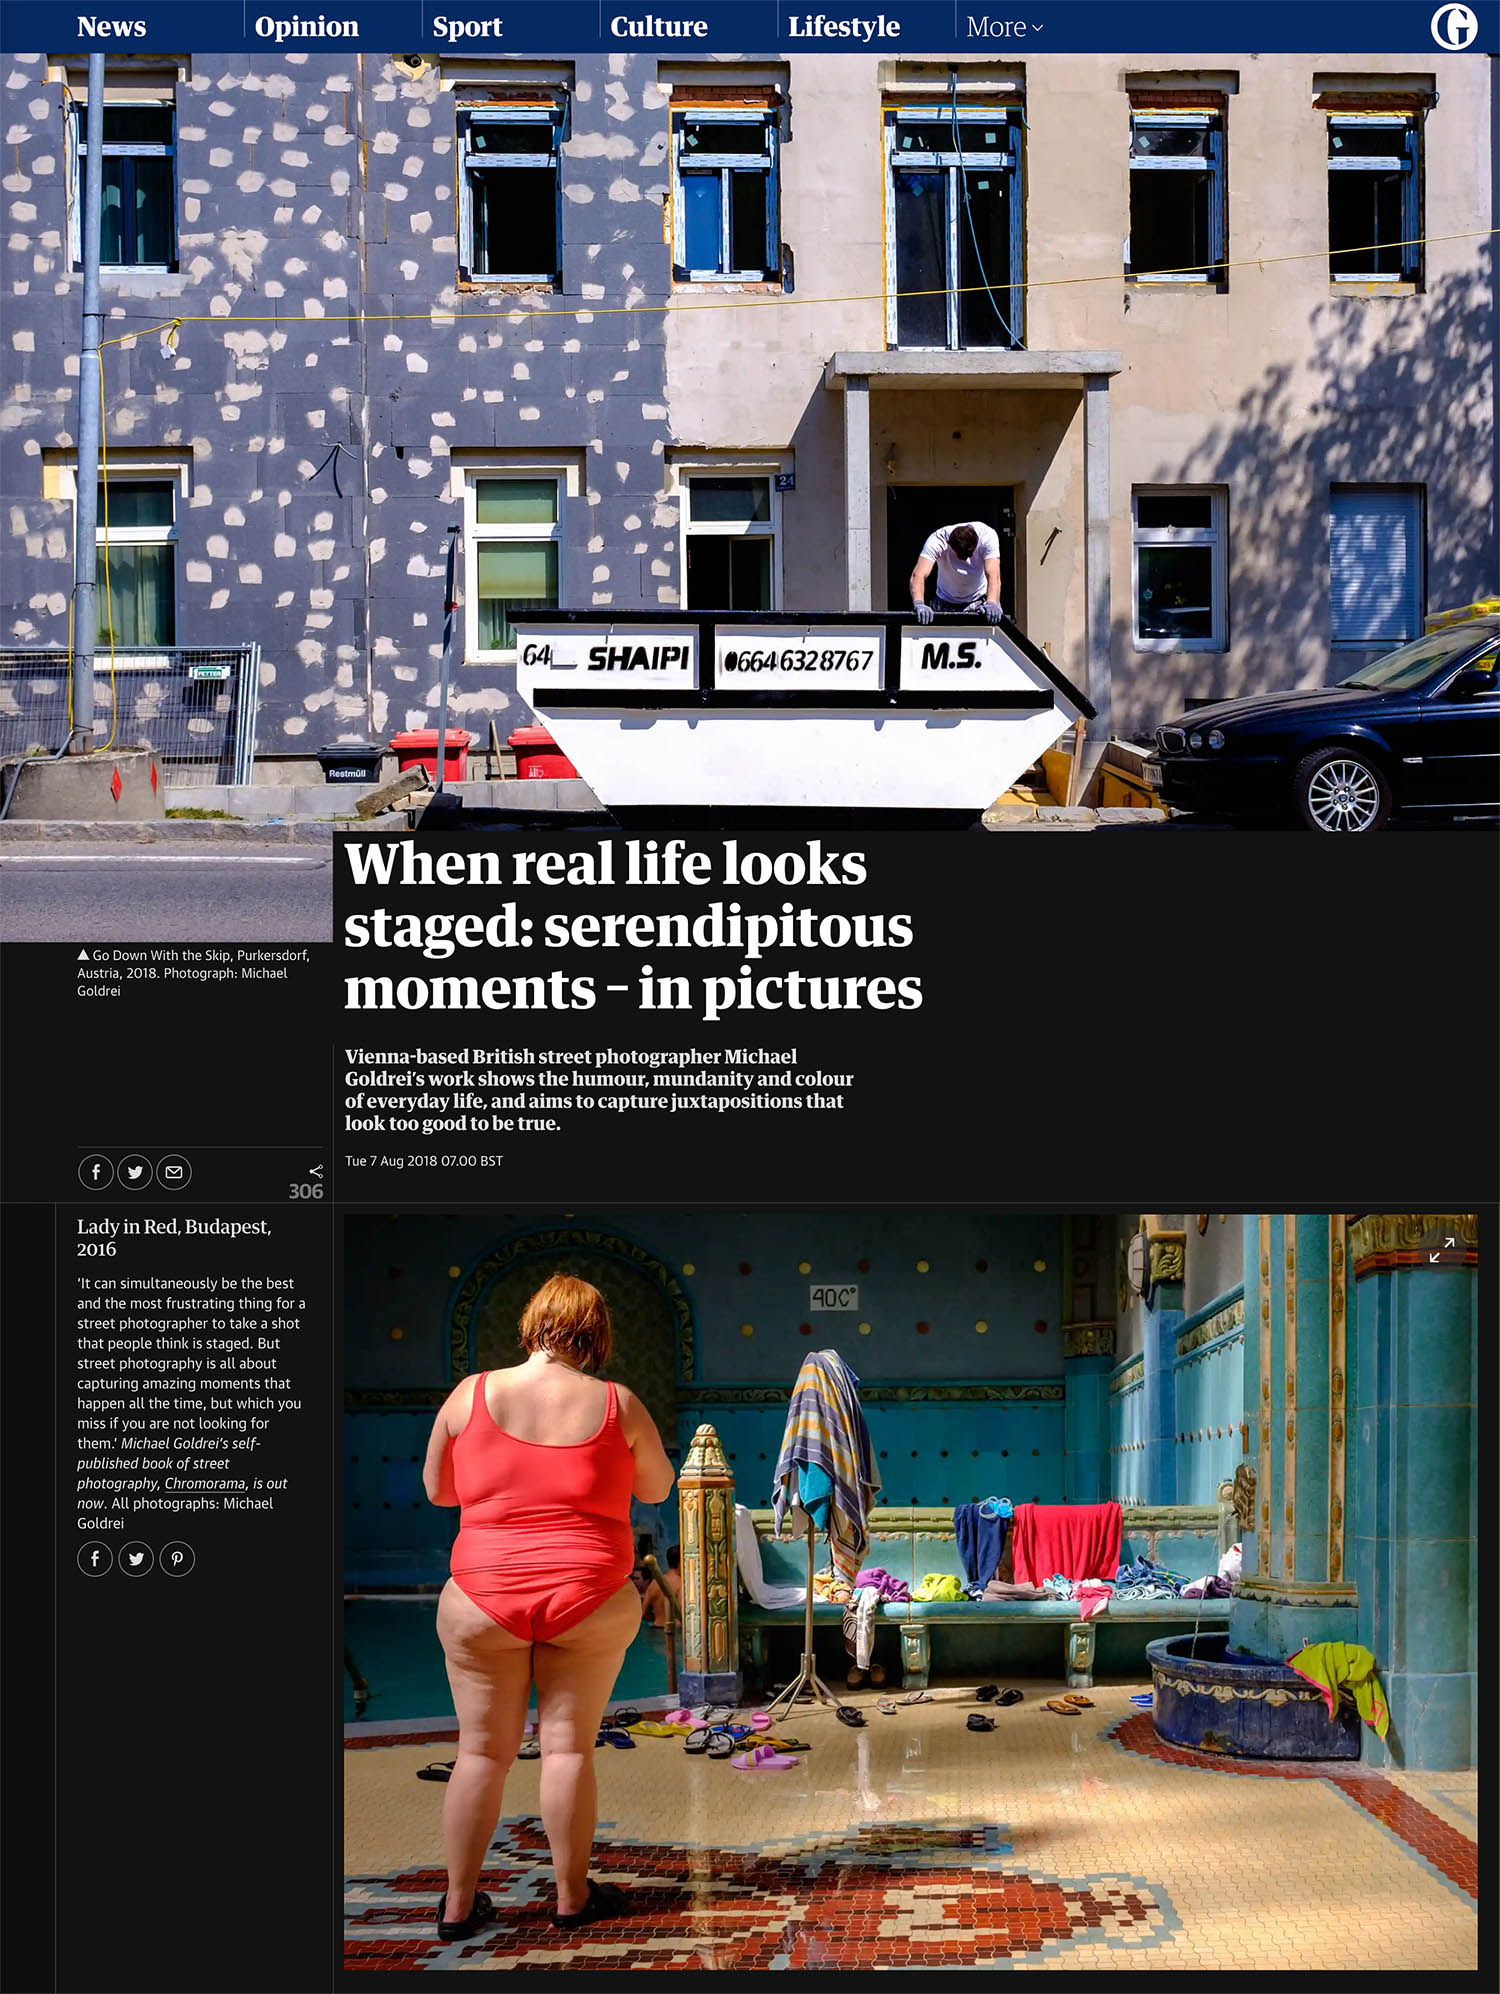 The Guardian - The Guardian featured my street photography in Aug 2018, highlighting shots from my book 'chromorama'.